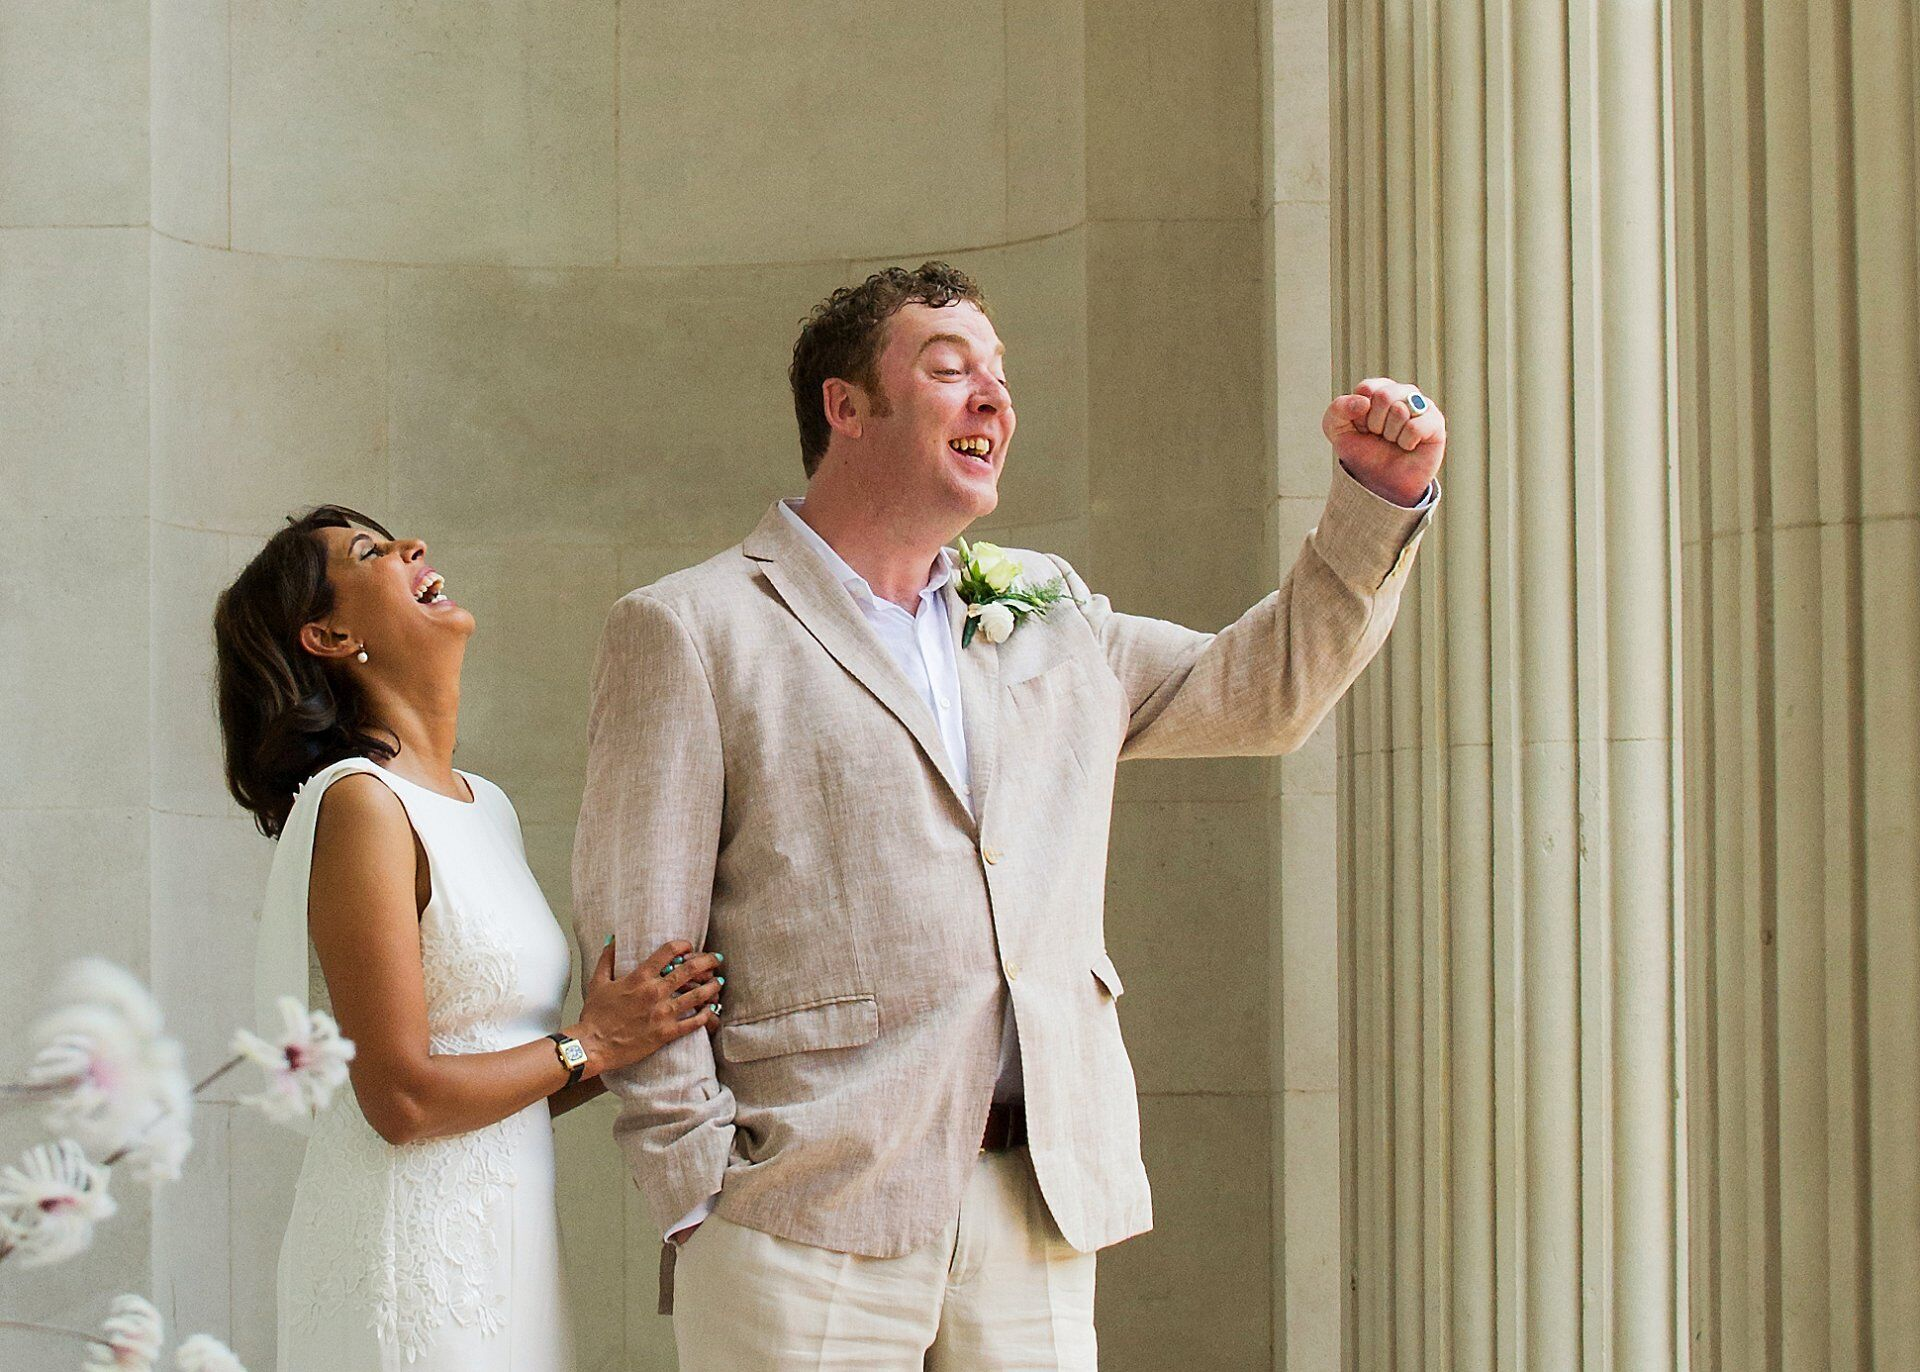 world cup quarter final wedding and groom celebrating as england score their first goal